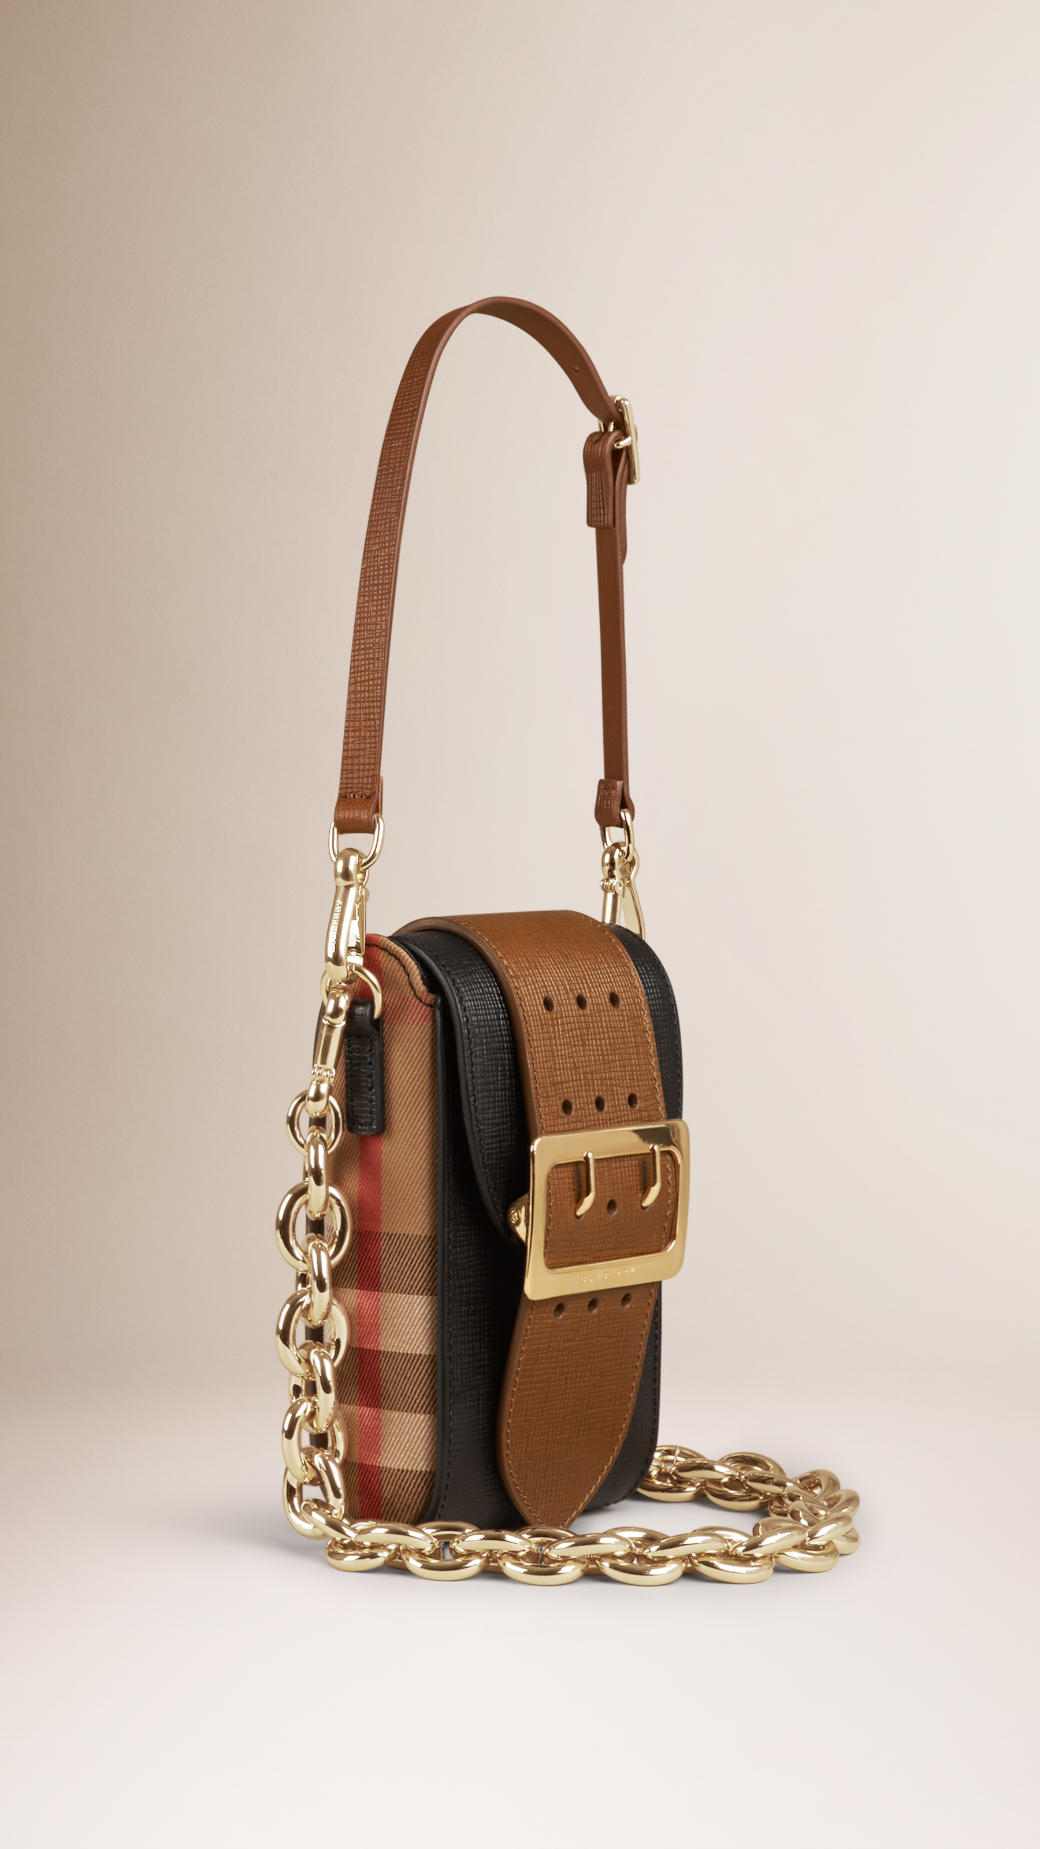 Burberry The Belt Bag Oblong In Textured Leather And